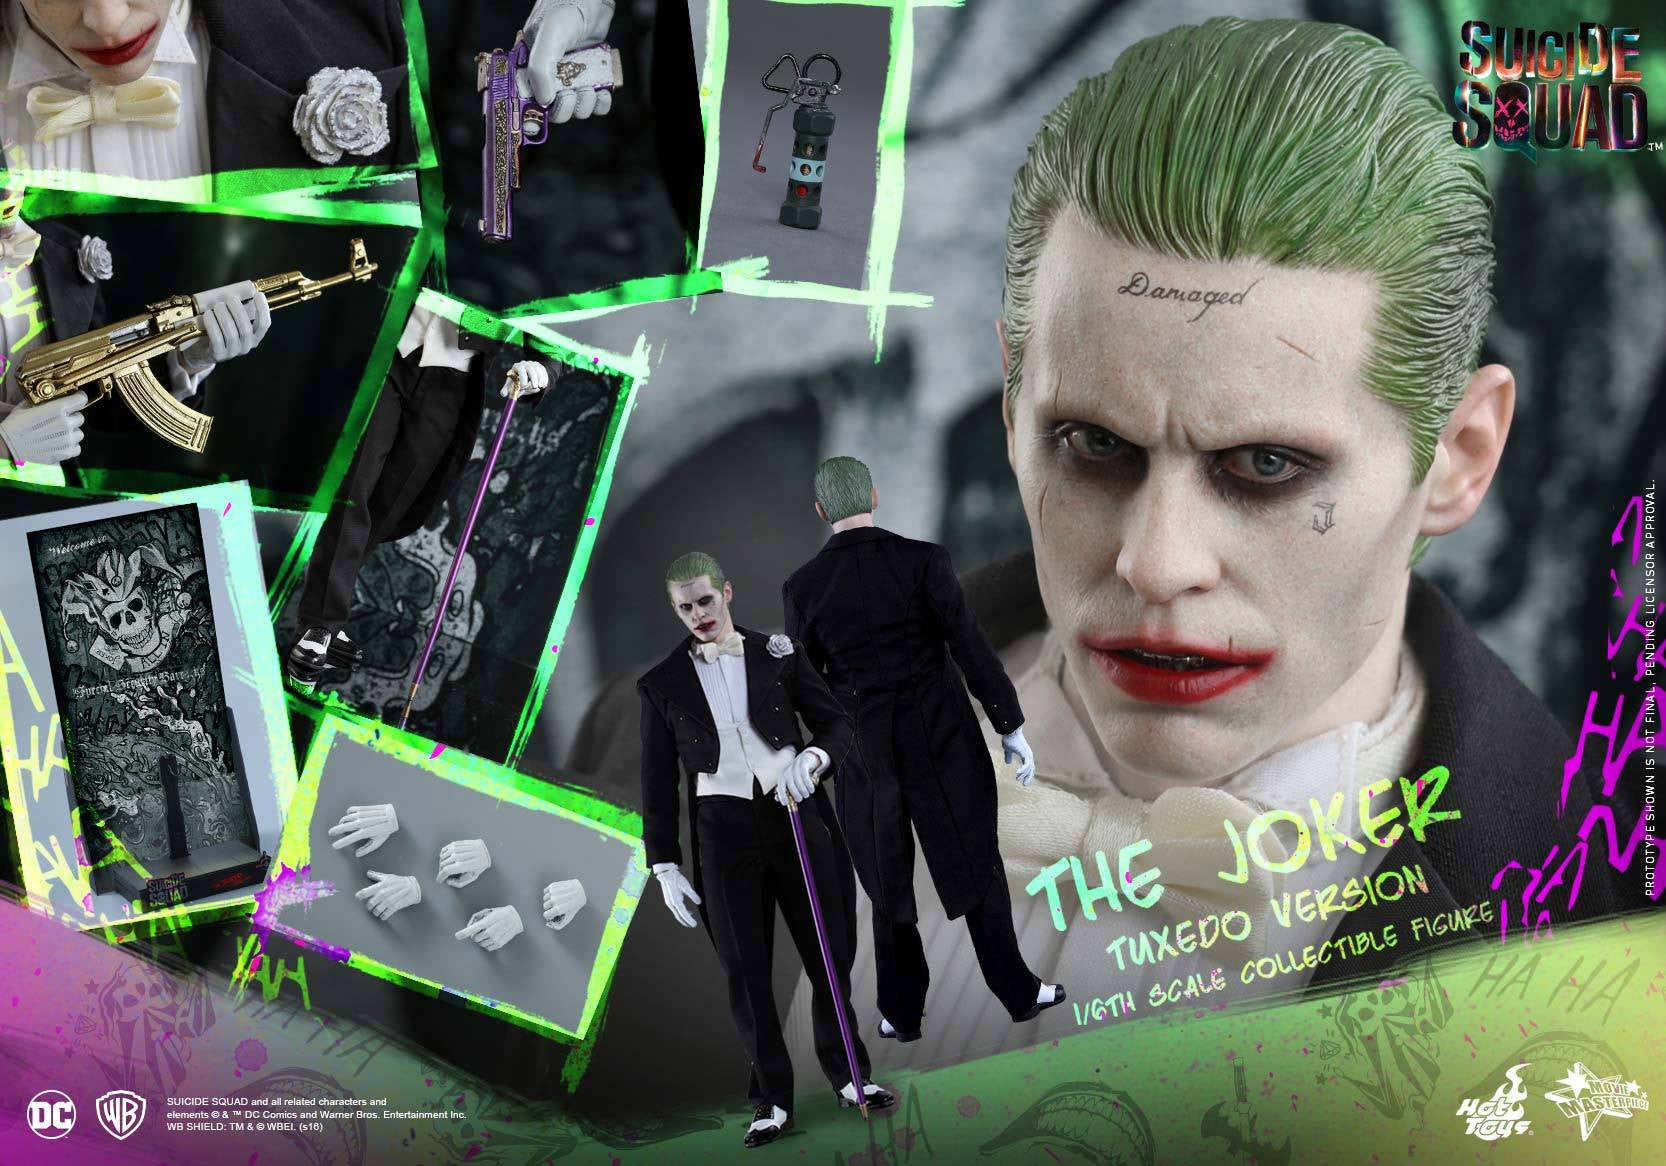 Hot Toys - MMS395 - Suicide Squad - The Joker (Tuxedo Version) - Marvelous Toys - 20